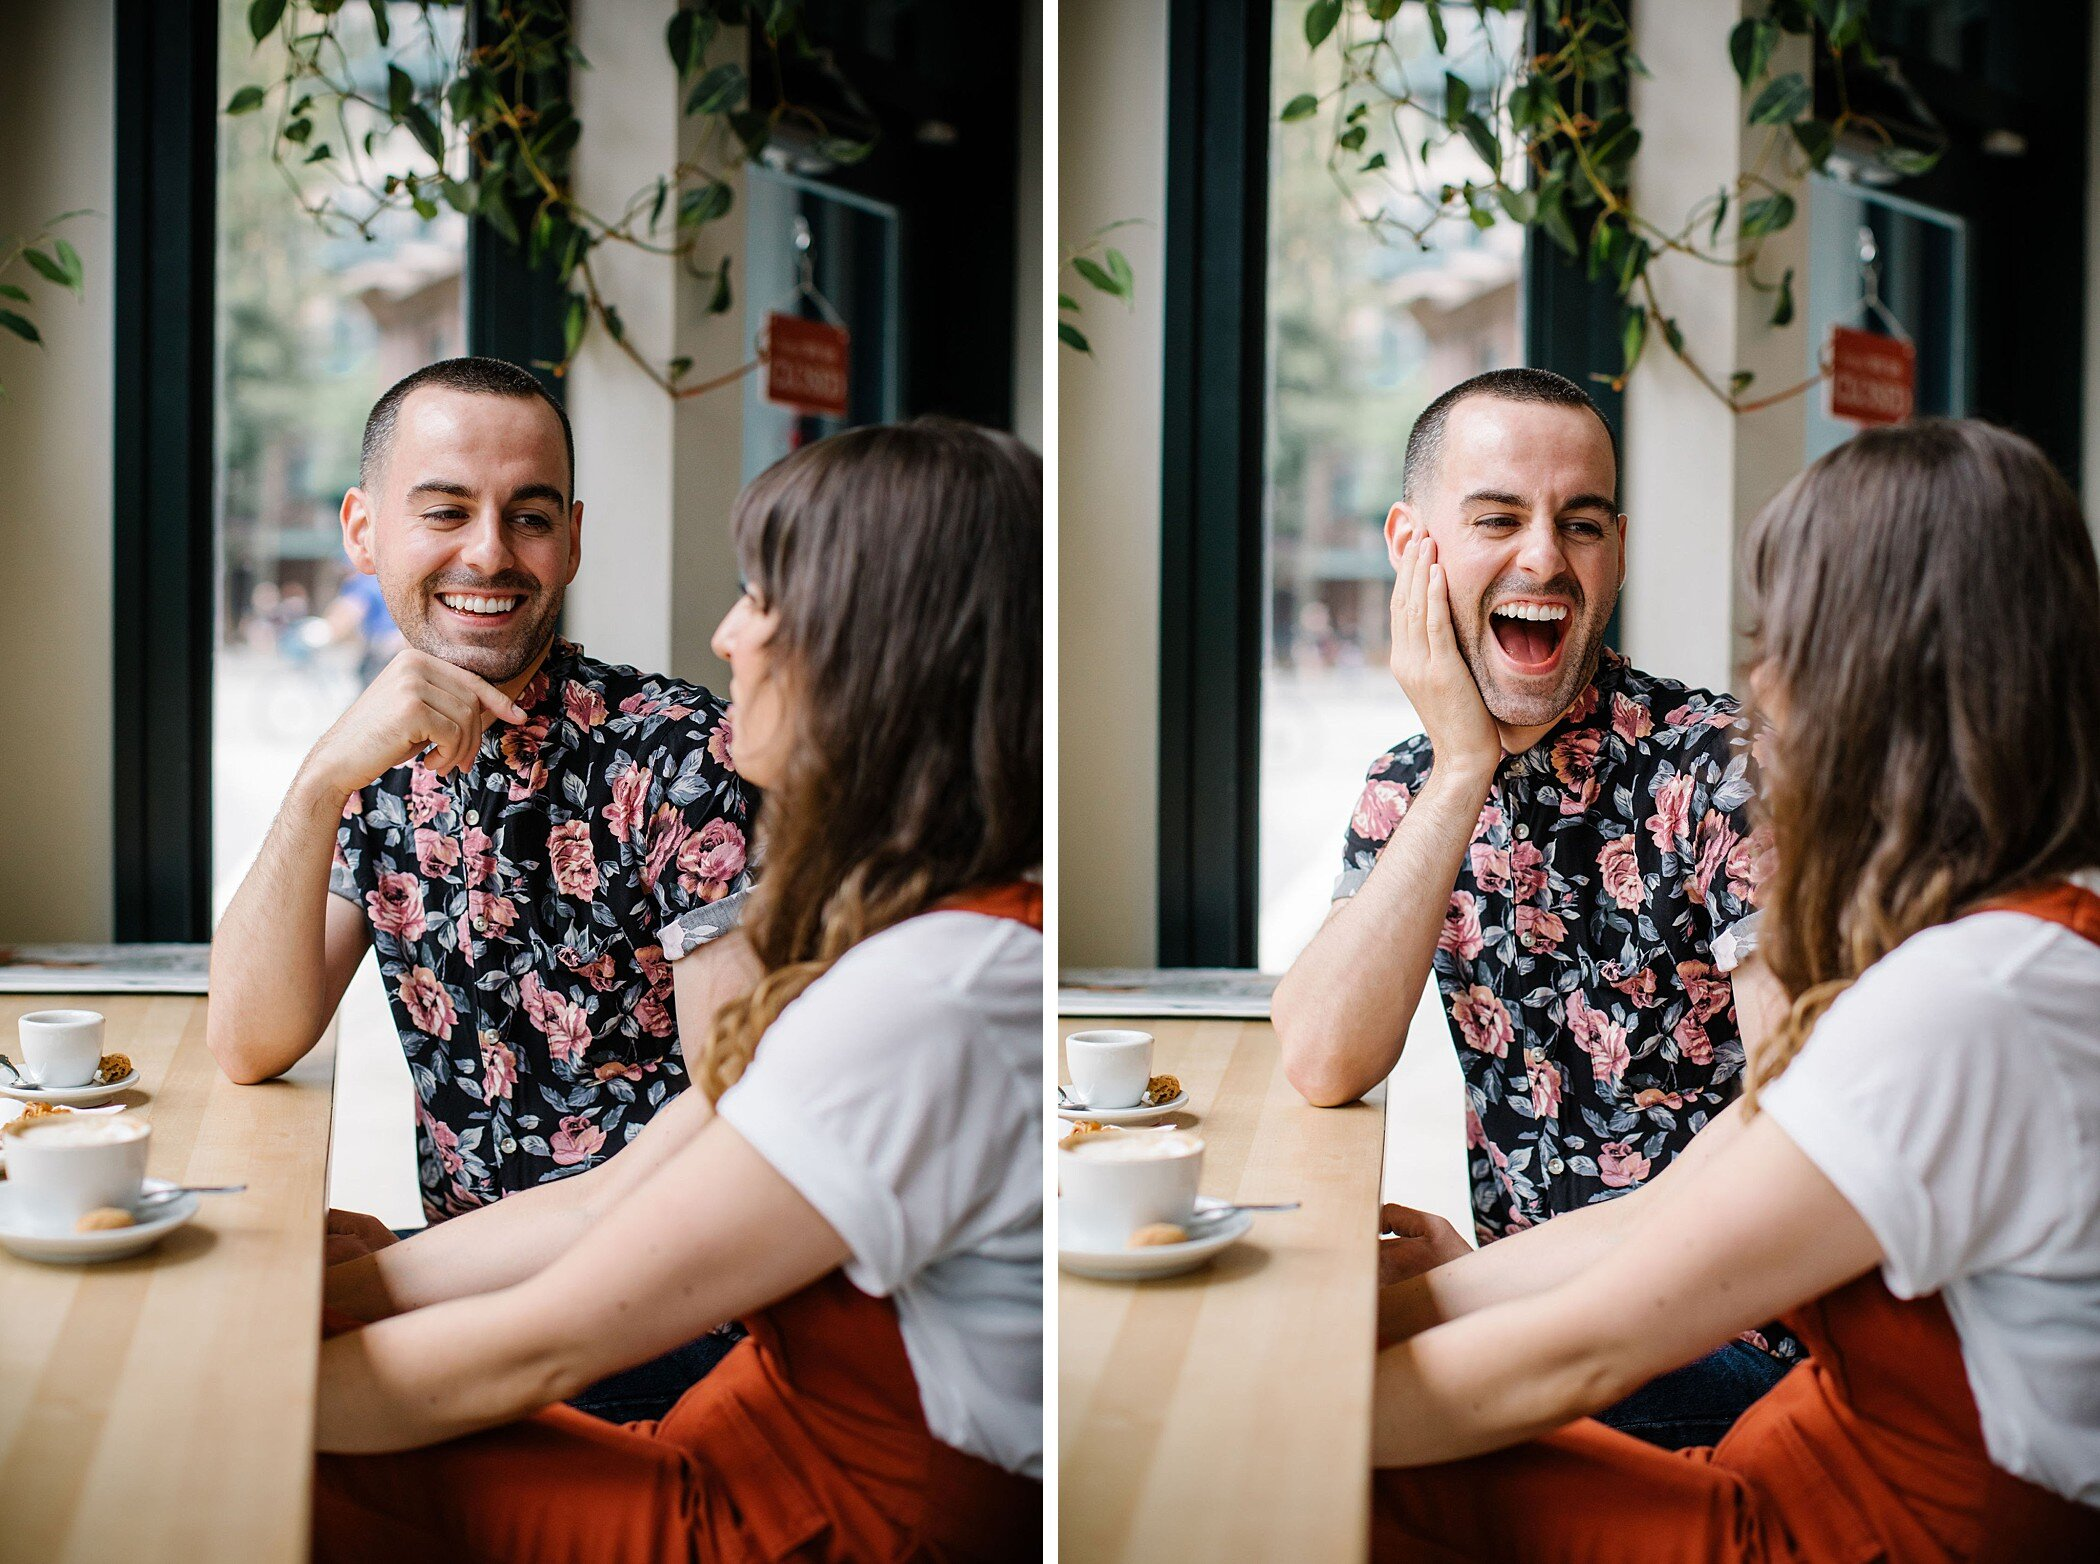 July14.DanandRo3110_Note Photography Documentary Photographer Wedding Photos Vancouver B.C. Best 2019 2020 Jericho Beach Engagement Session Gastown Di Beppe DiBeppe.jpg